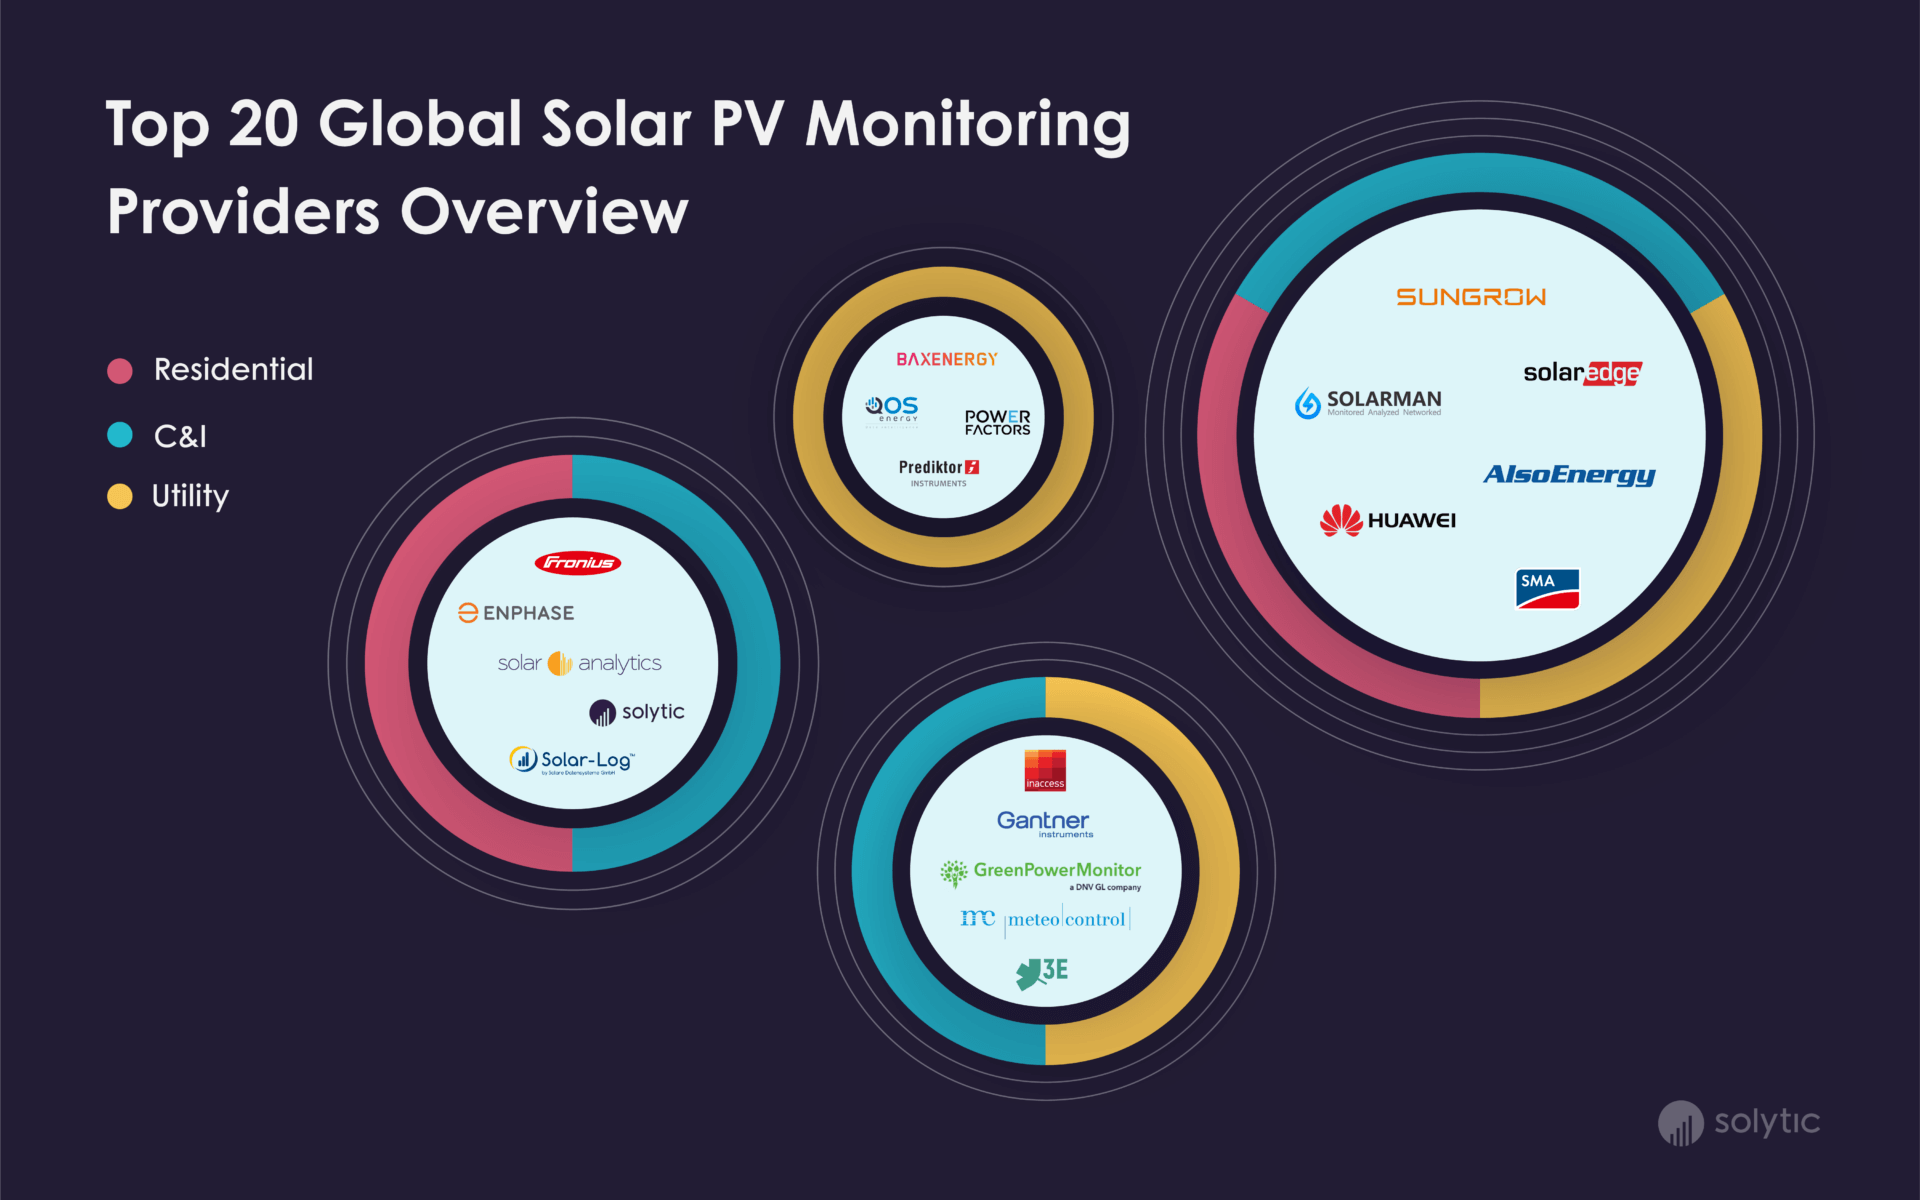 PV Monitoring Provider Overview